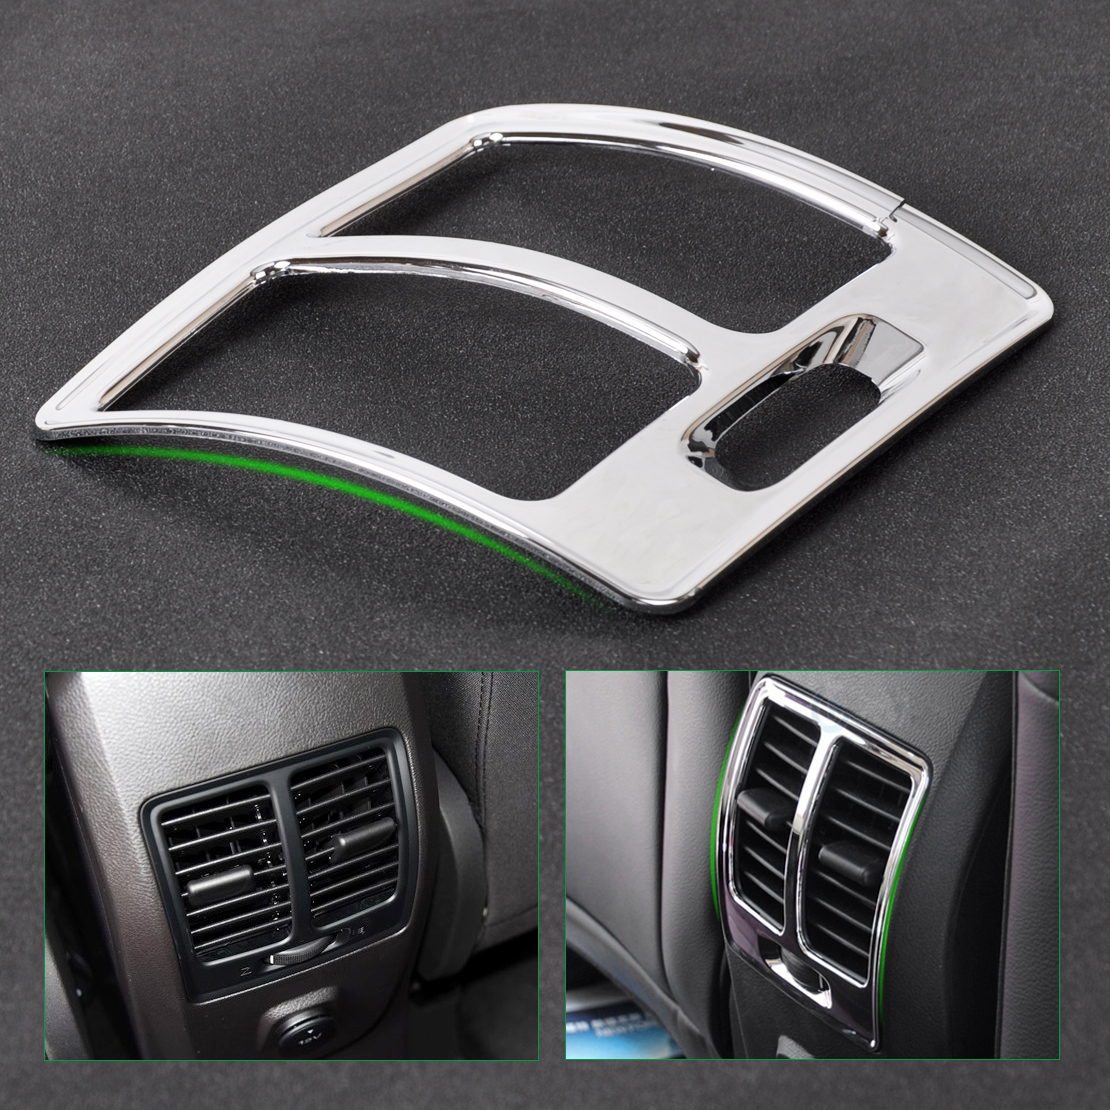 beler New Chrome Armrest Box Rear Air Vent Frame Trim Cover Car Accessories Decoration For Ford ESCAPE KUGA 2013 2014 2015